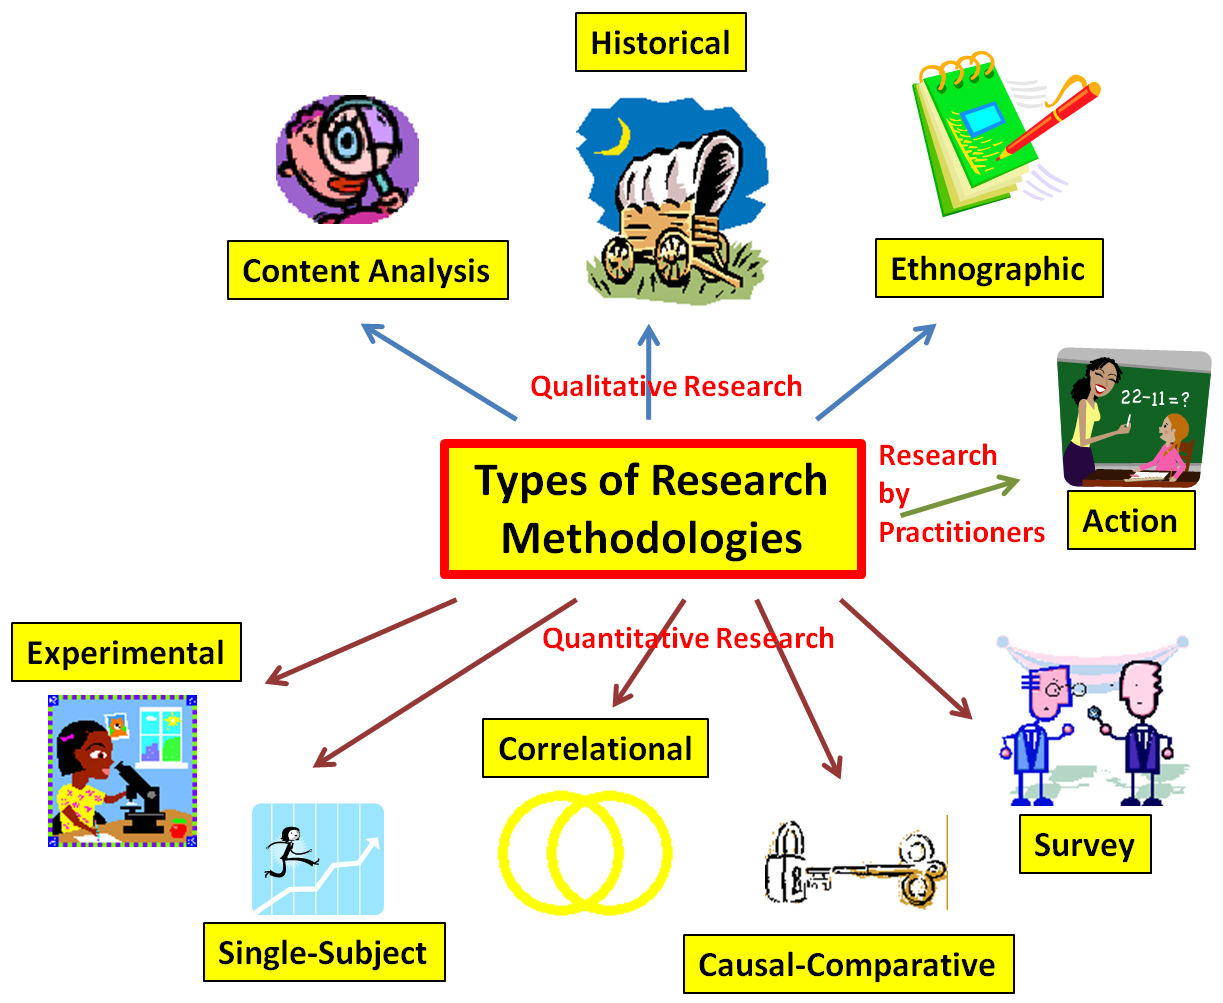 Types of Research Methodologies concept map